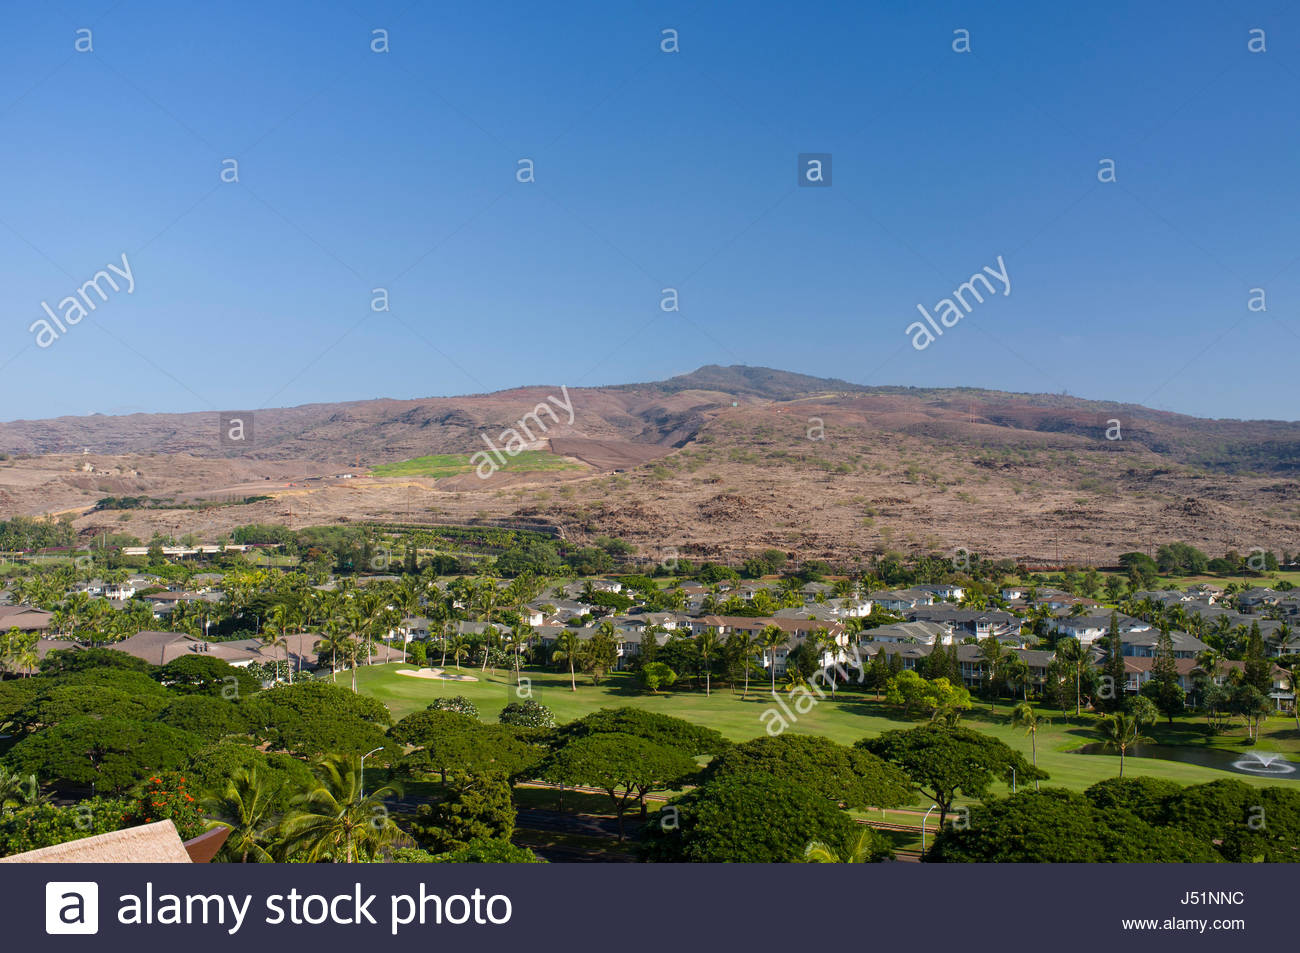 Waimanalo Gulch Landfill in the Waianae Mountains above Kapolei golf course and houses, Kapolei, Oahu, Hawaii, USA - Stock Image